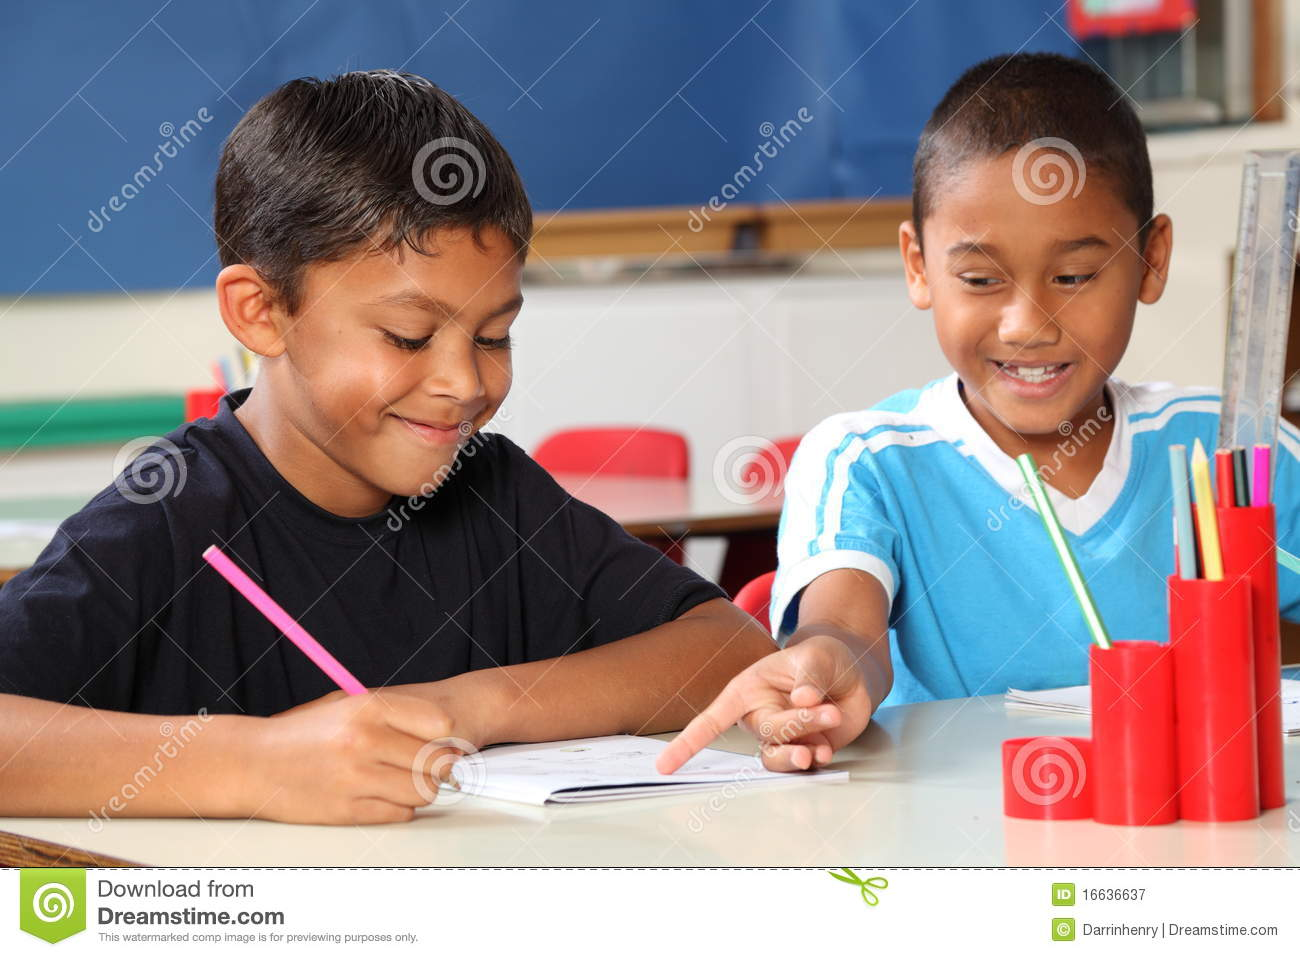 Students Helping Each Other Stock Photos, Images, & Pictures - 82 ...